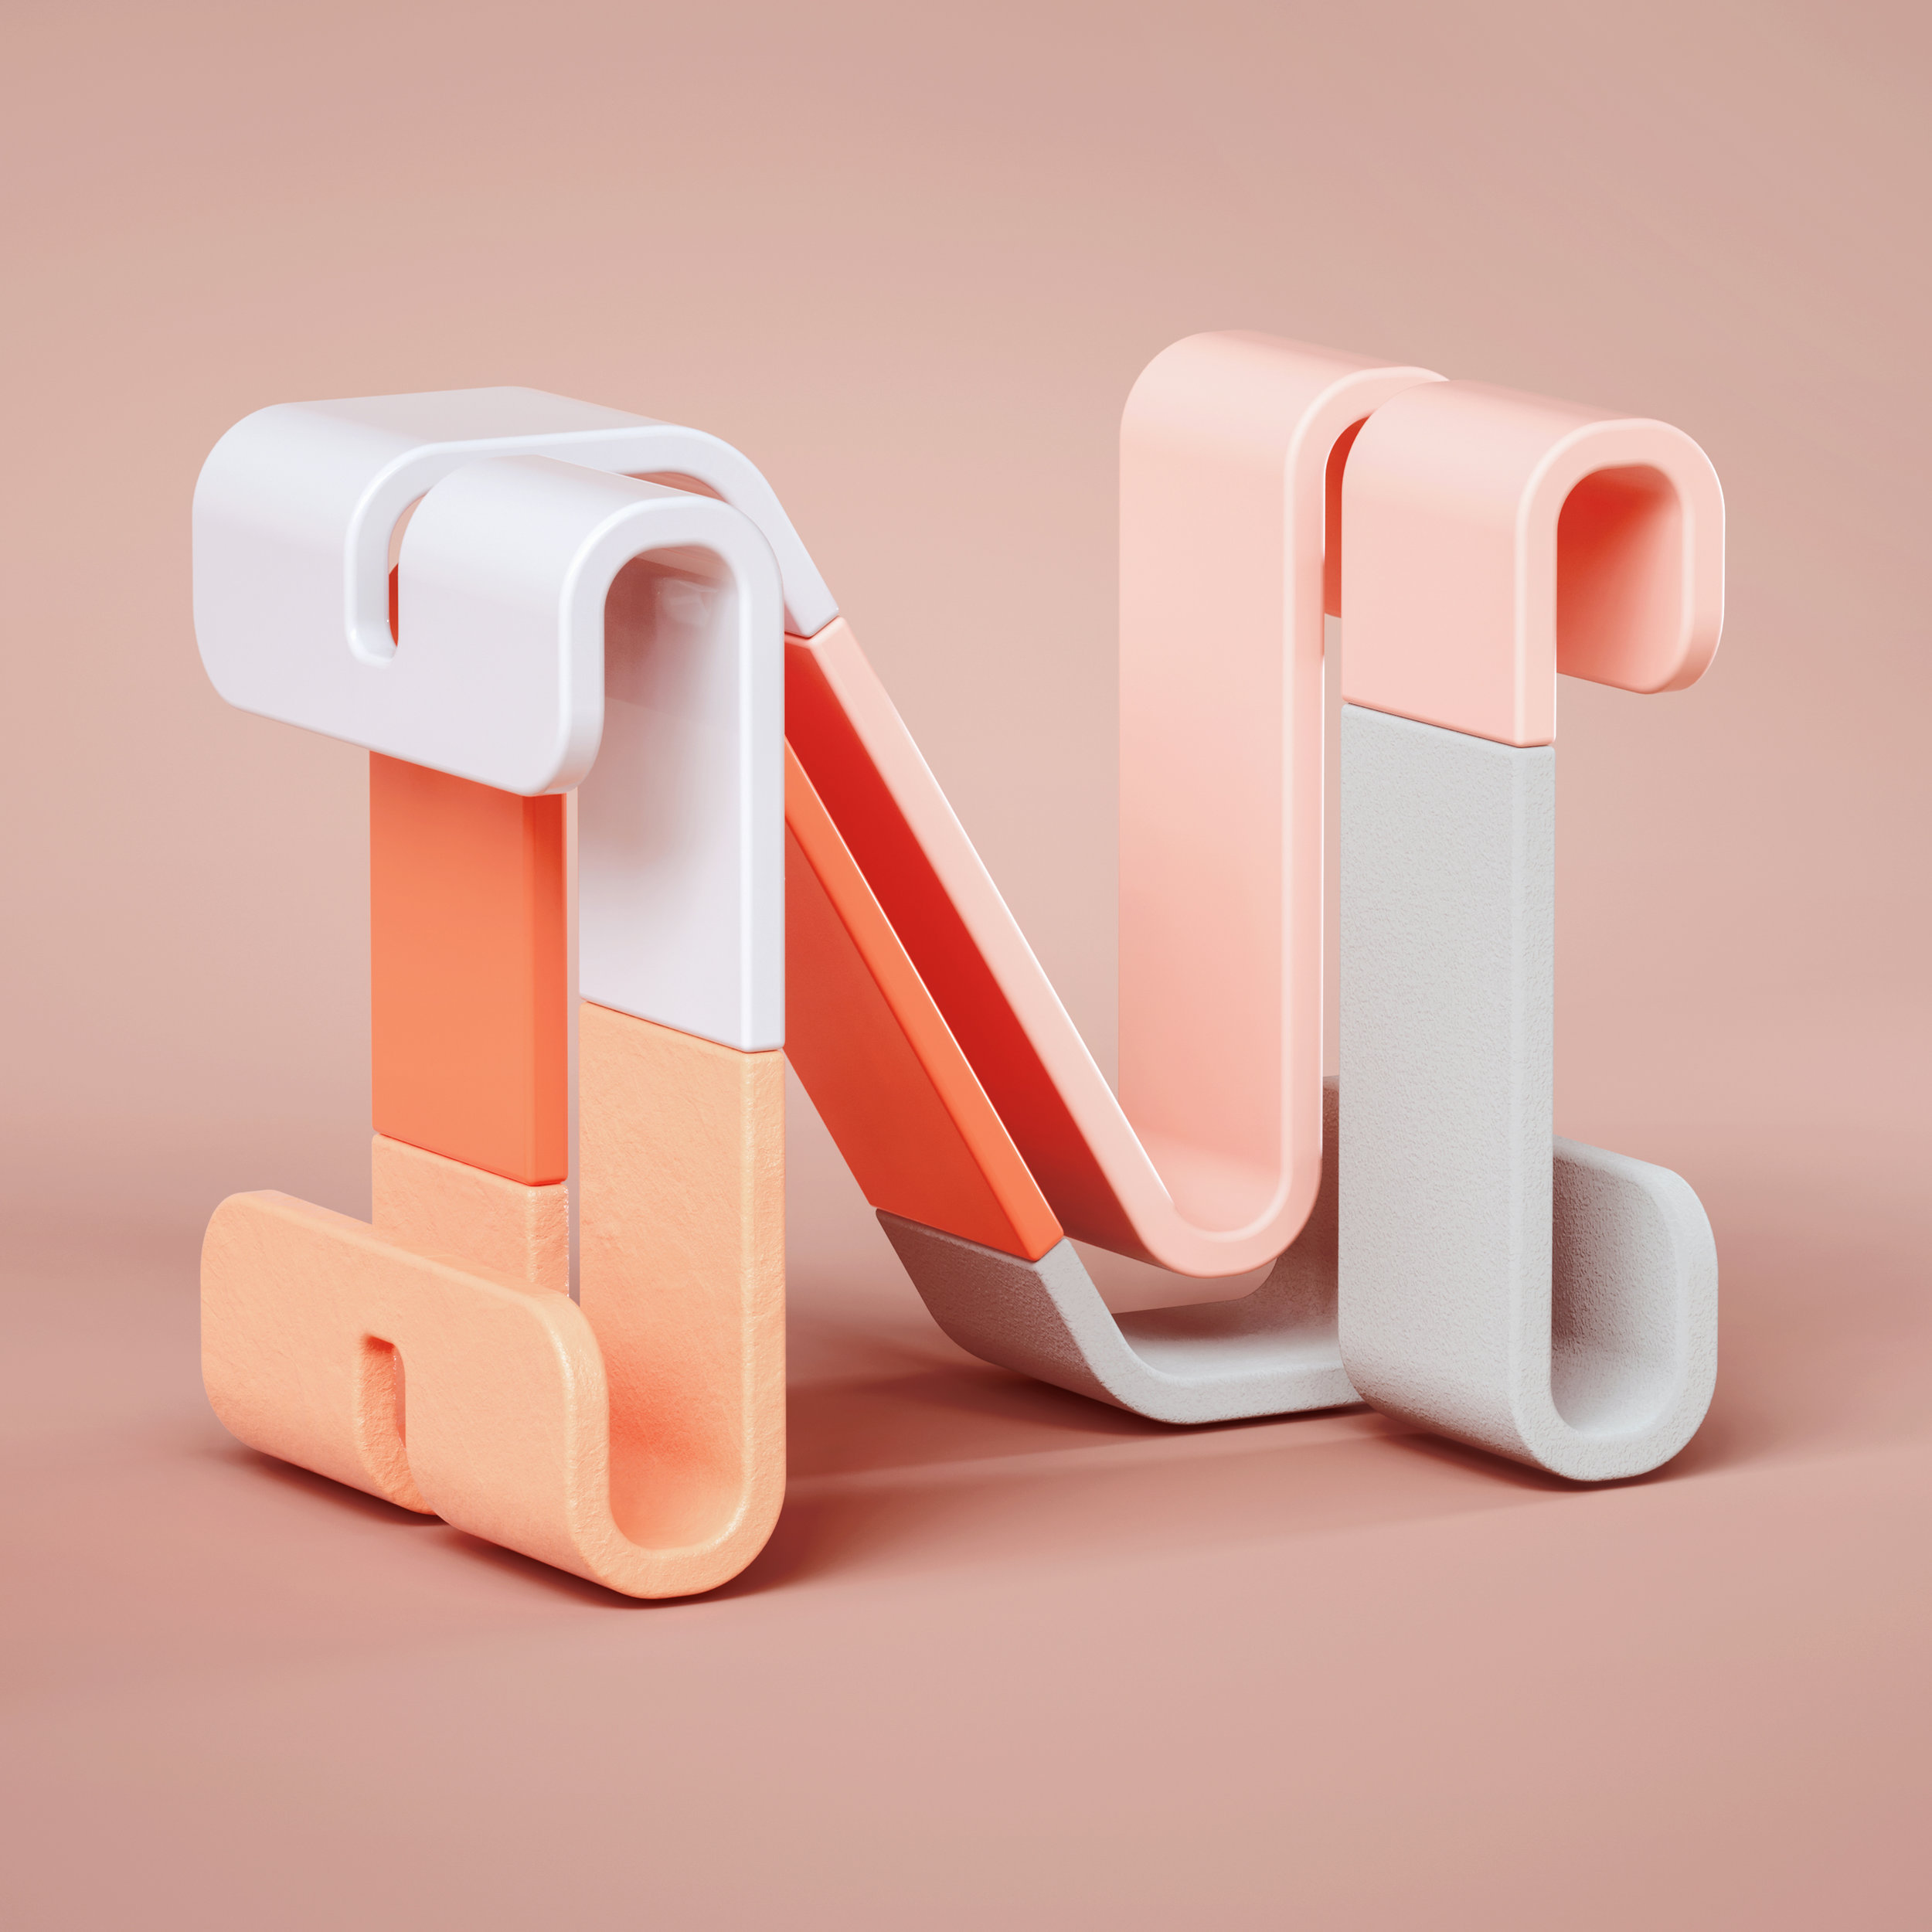 36 Days of Type 2019 - 3D Typeform letter N visual.